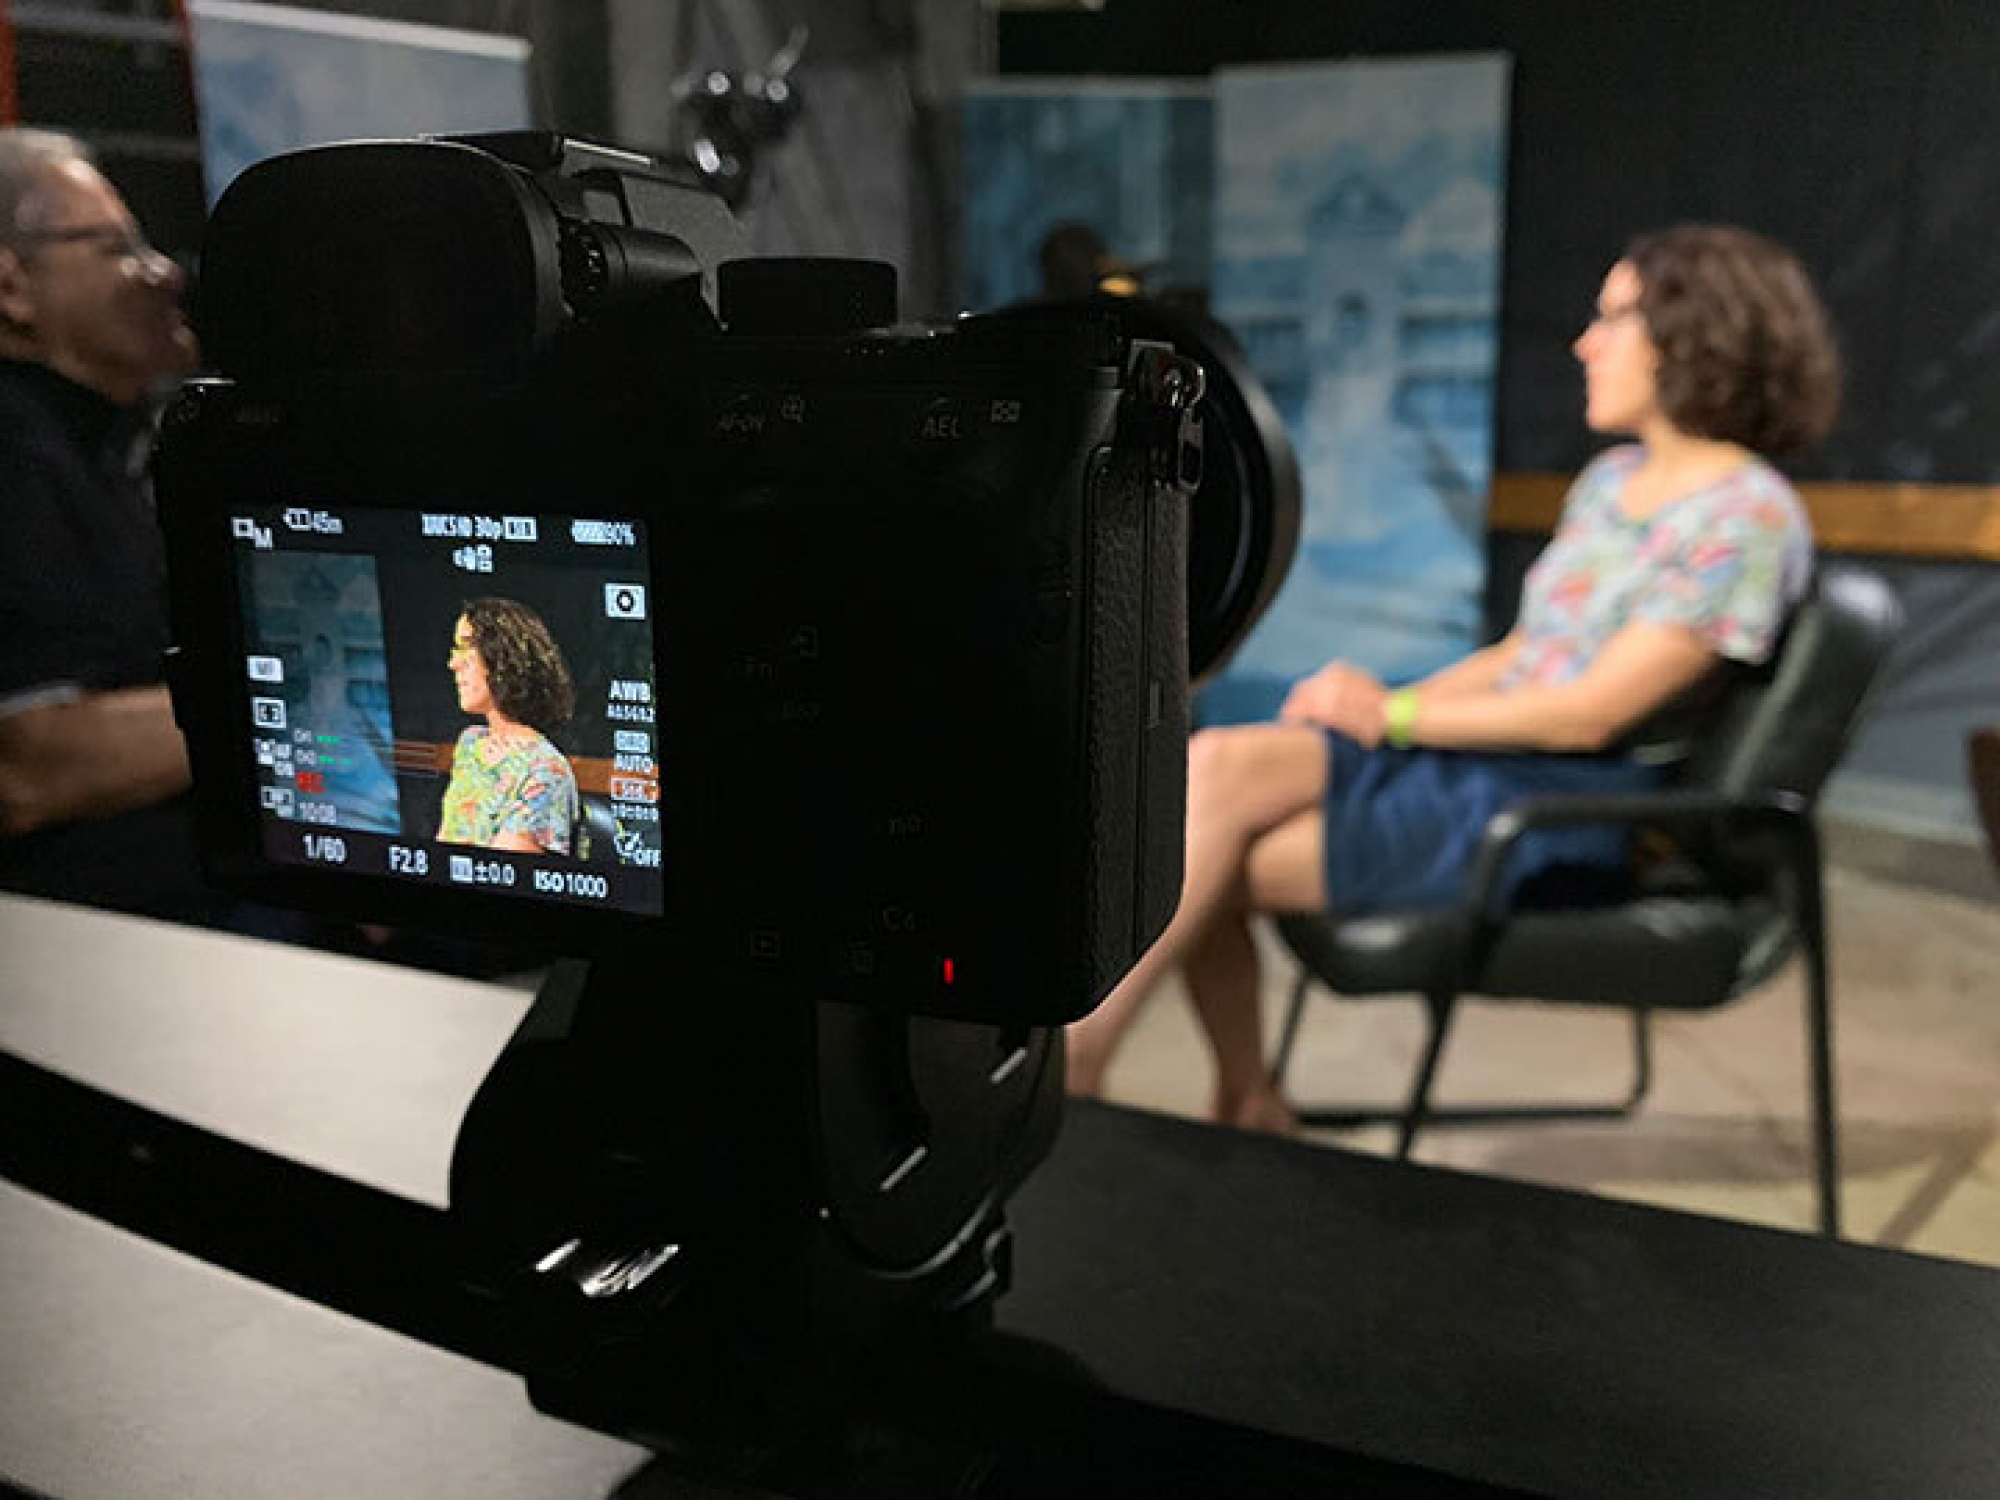 Behind the scenes of an interview in Digital Learning Studios.